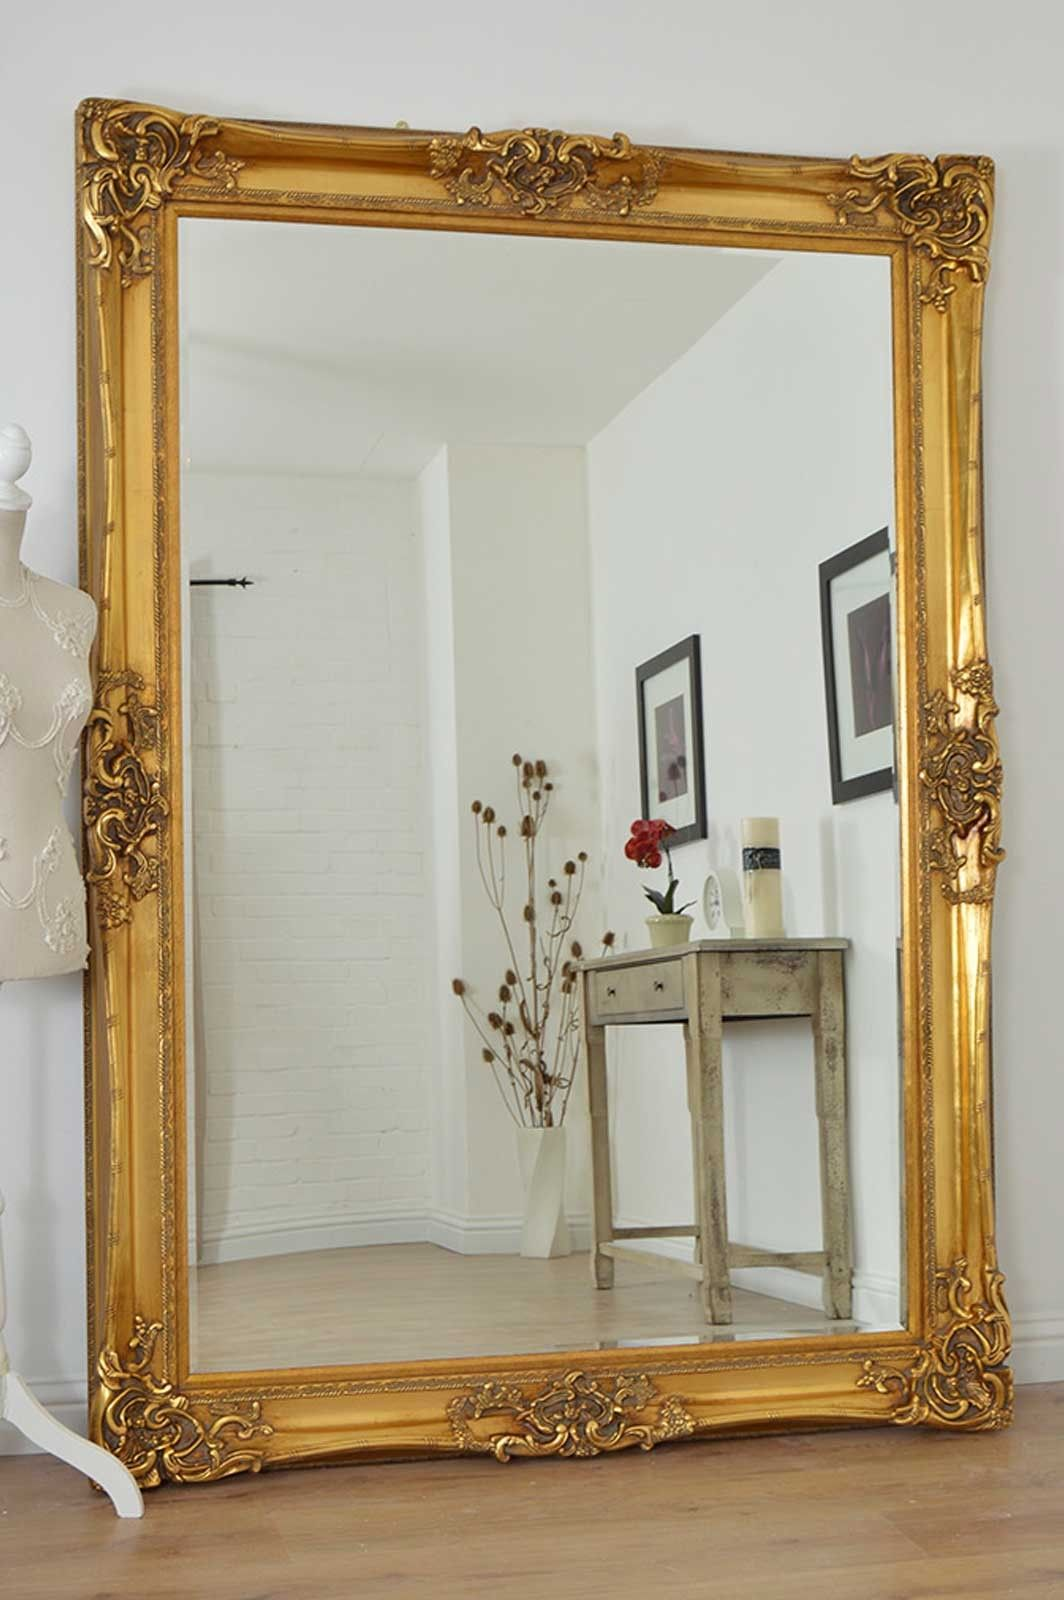 Large gold very ornate antique design wall mirror 7ft x for Large framed mirrors for walls